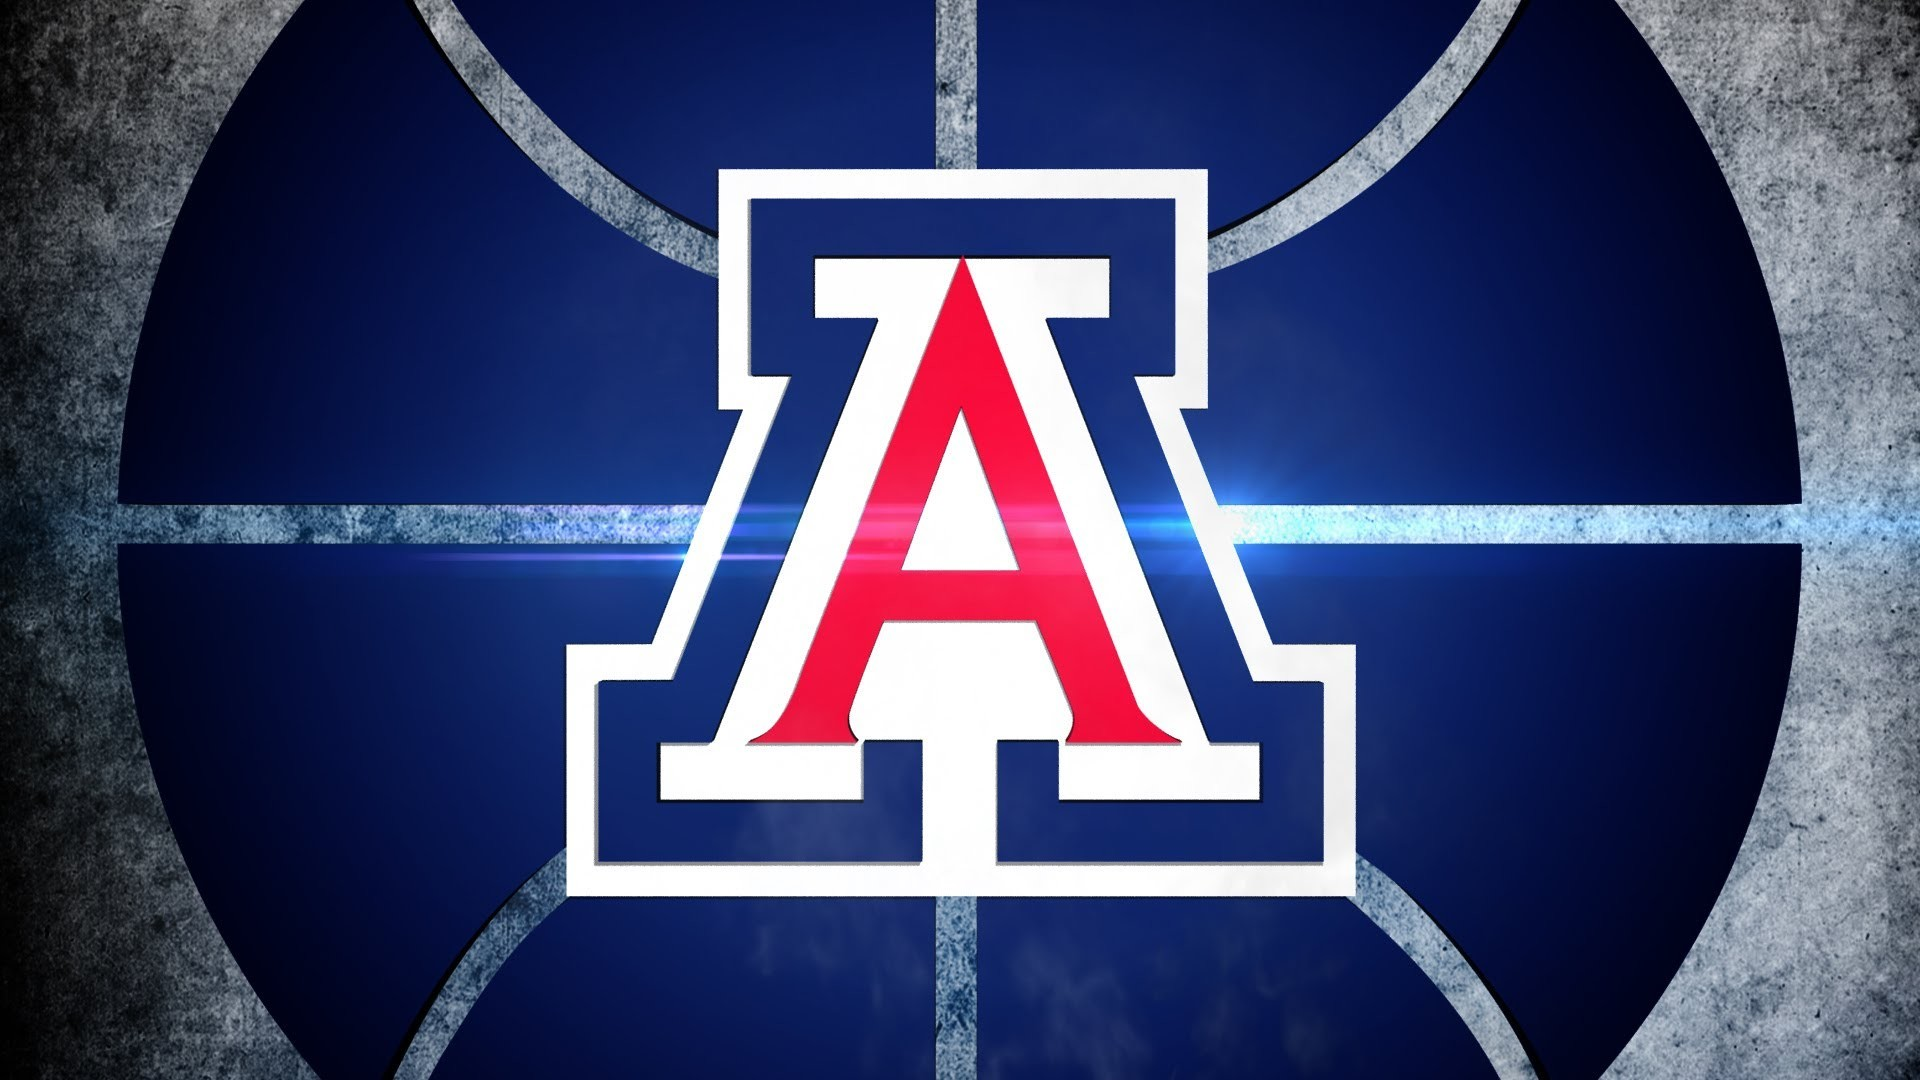 1920x1080 Displaying 18 Images For University Of Arizona Wallpaper